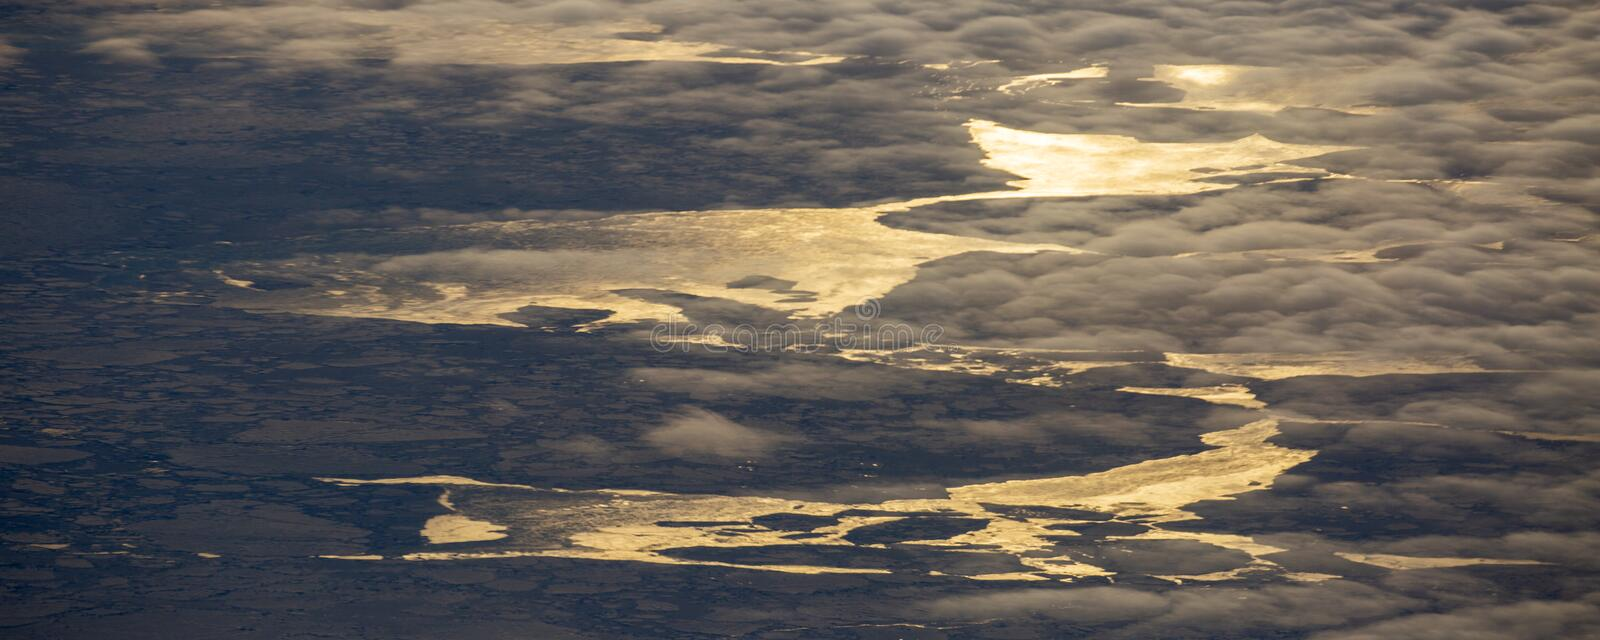 14Take an aerial view of the ice and sunrise over the bering strait.(1). The bering strait is located in the high latitudes, cold weather, many storms royalty free stock photos